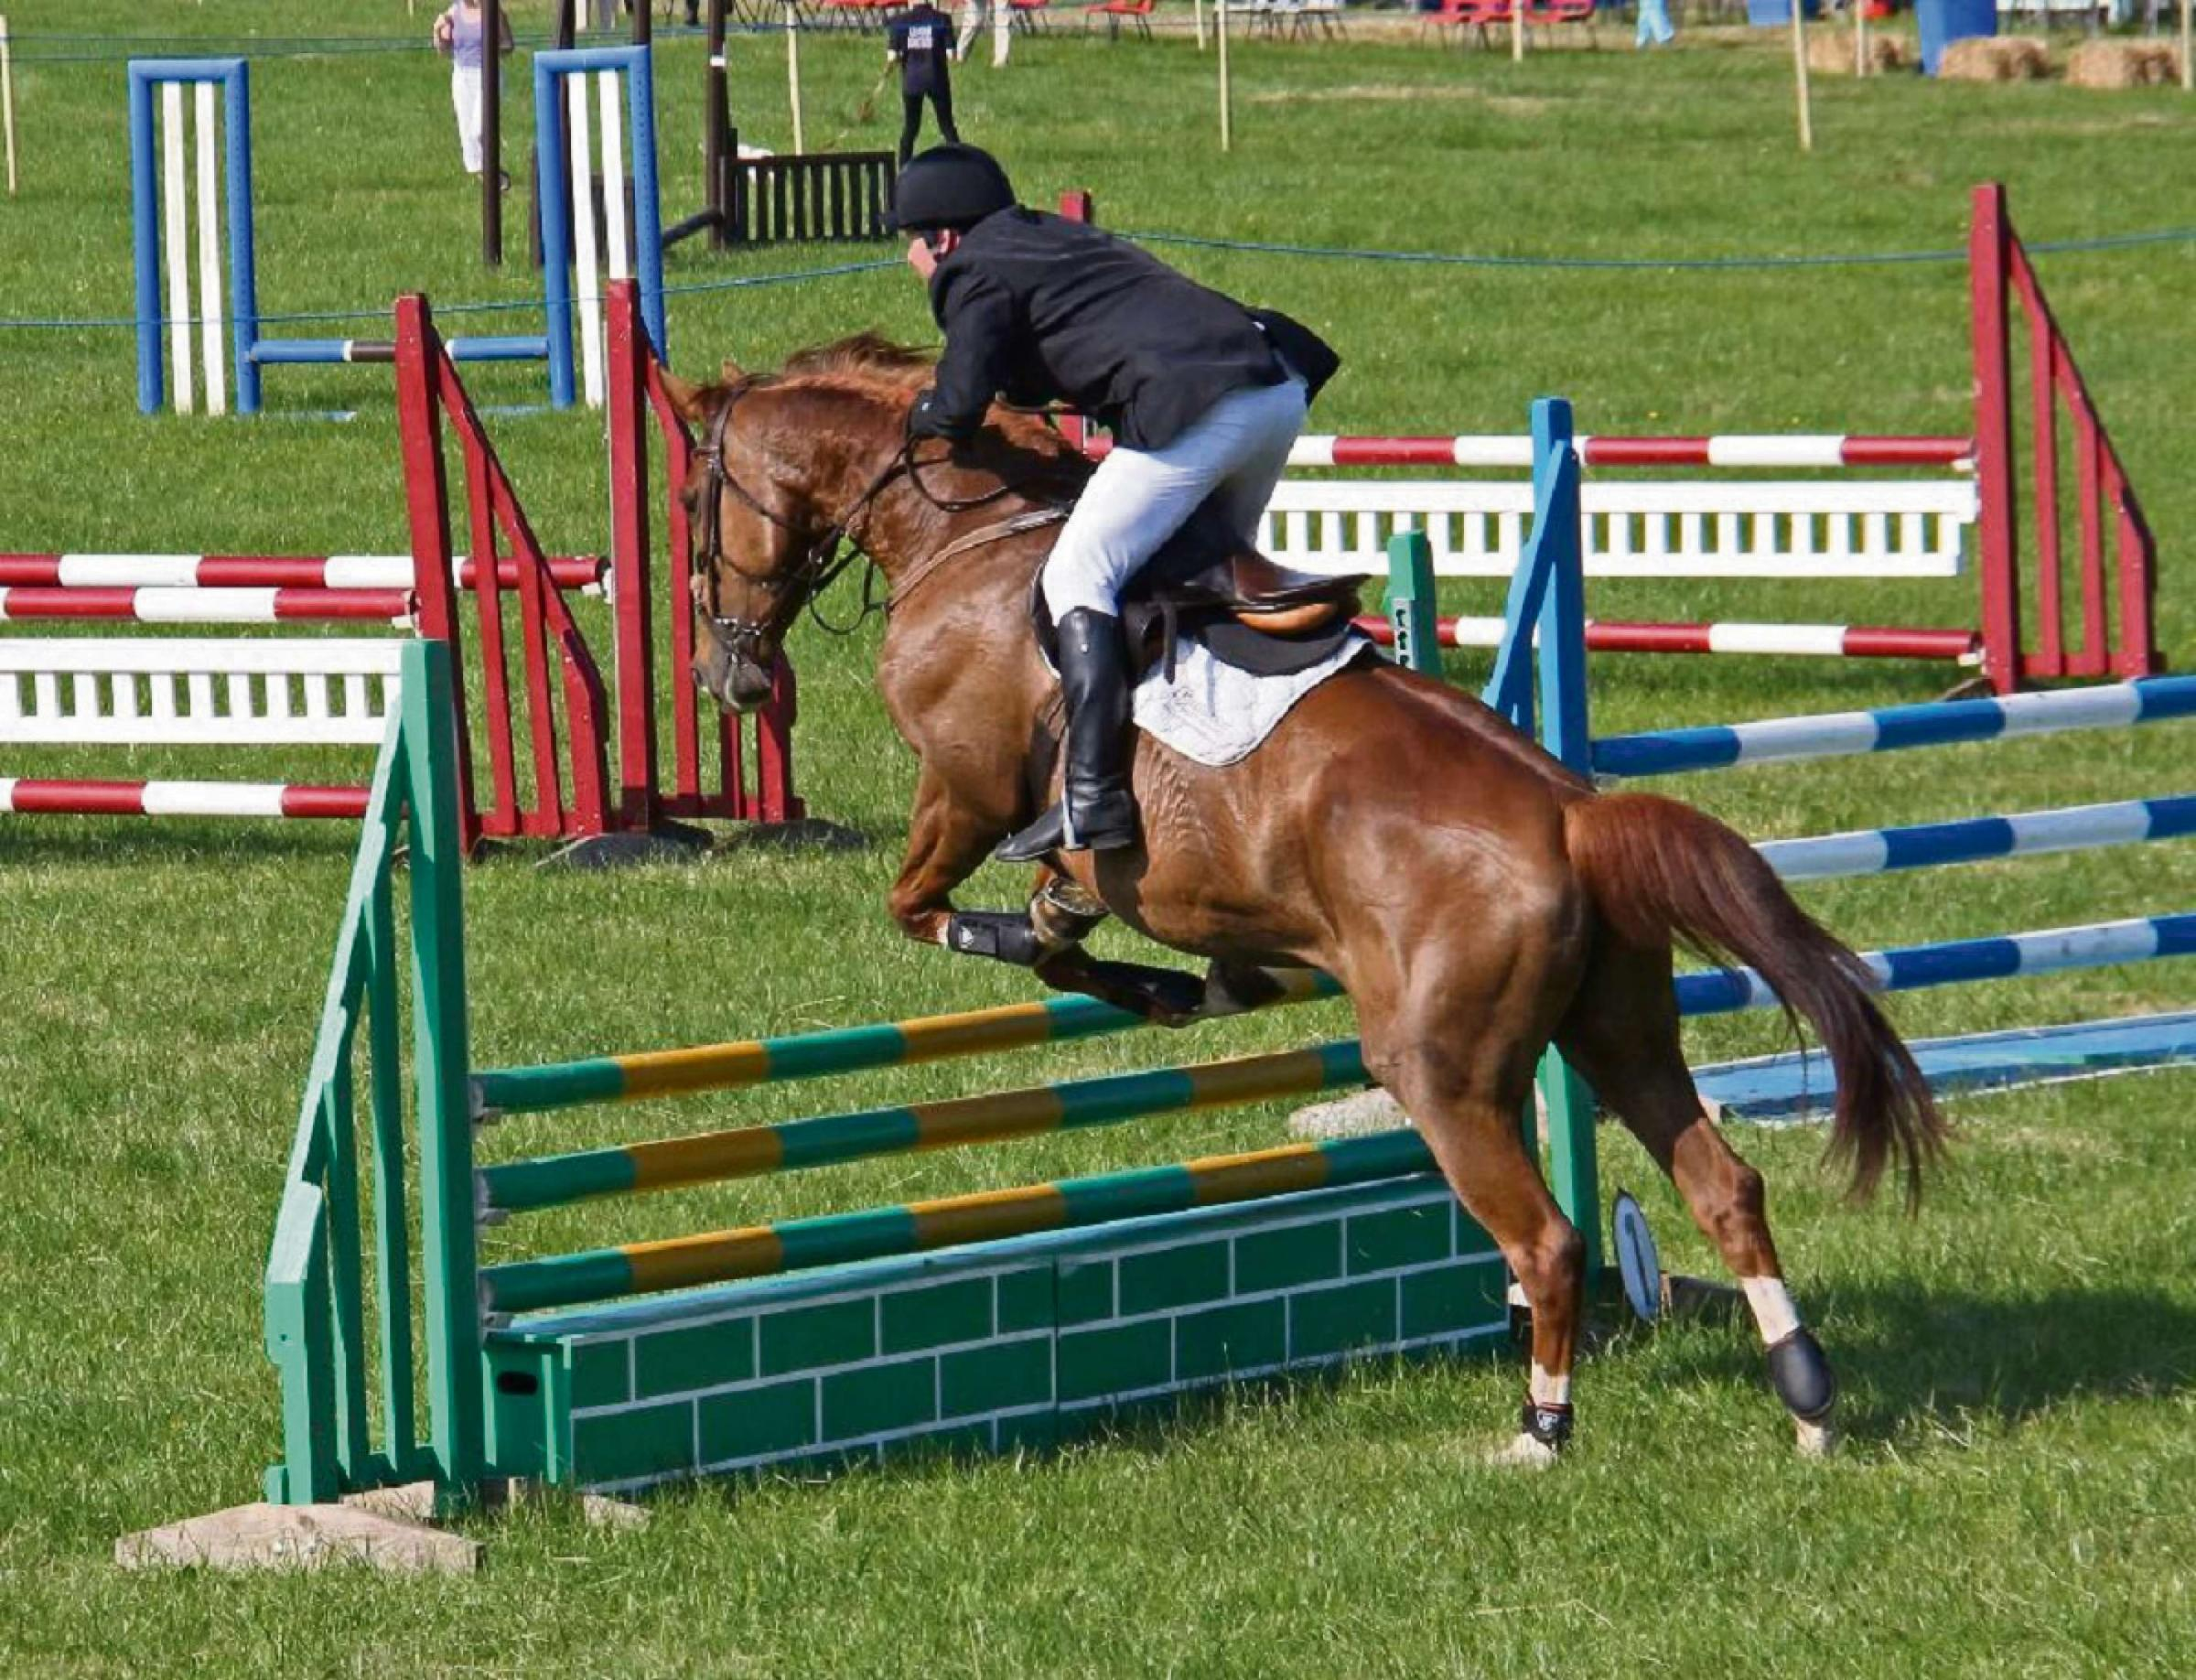 Showjumping at last year's Hanbury Countryside Show. SP